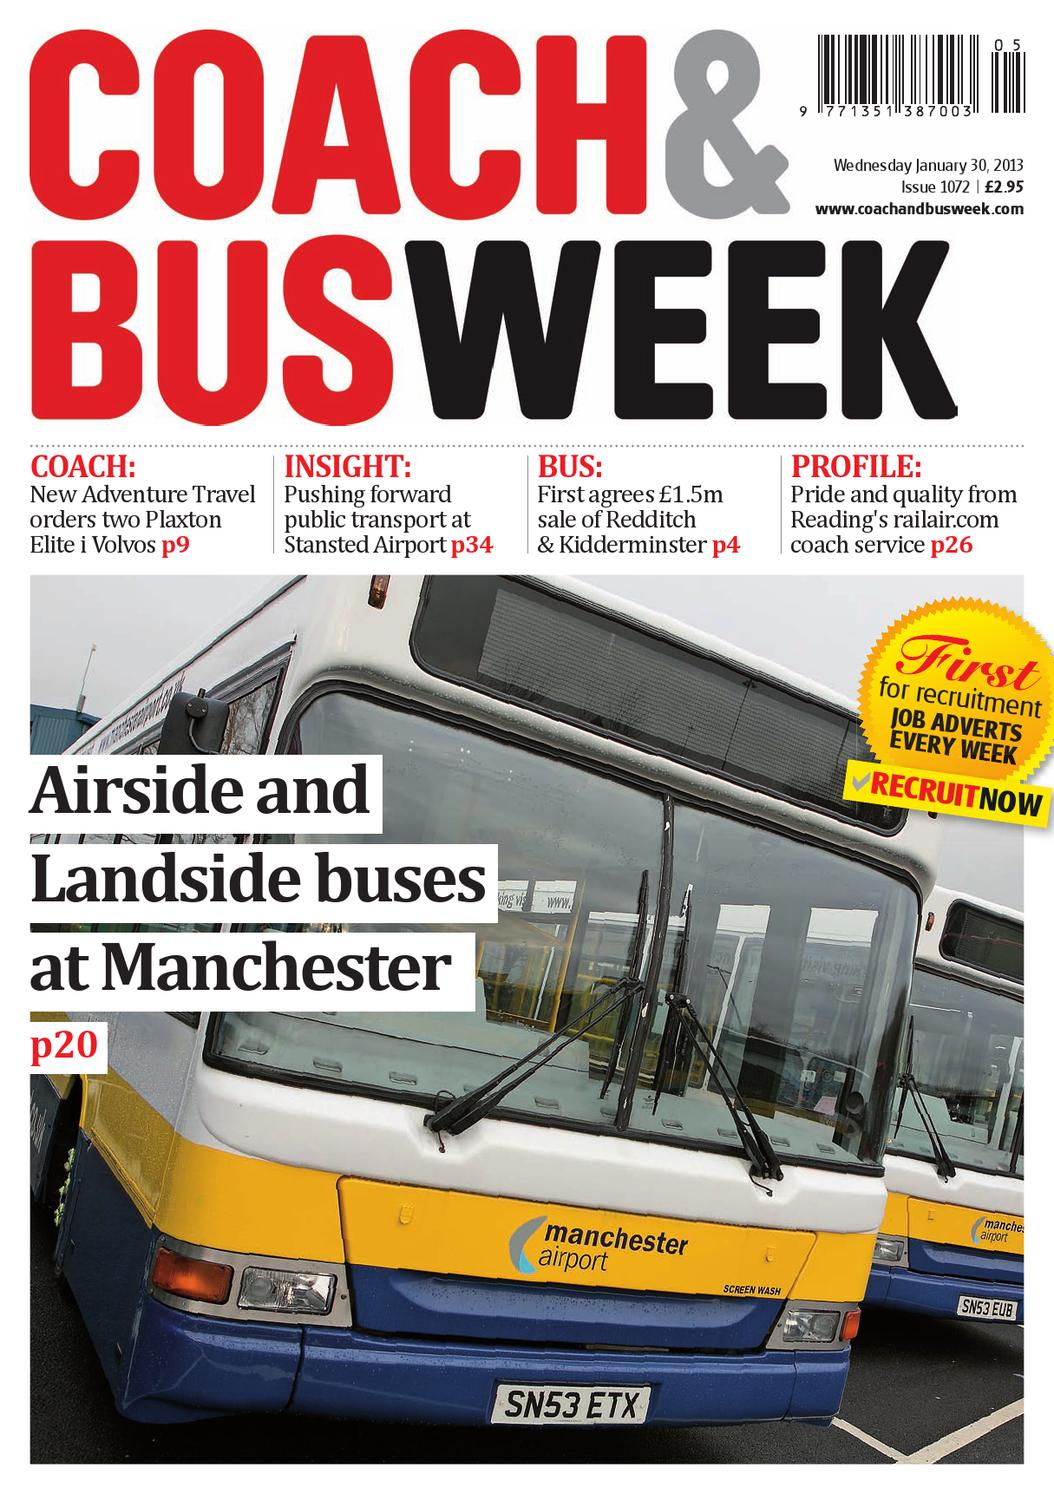 Stansted Car Village Shuttle Coach Bus Week Issue 1072 By Coach And Bus Week Group